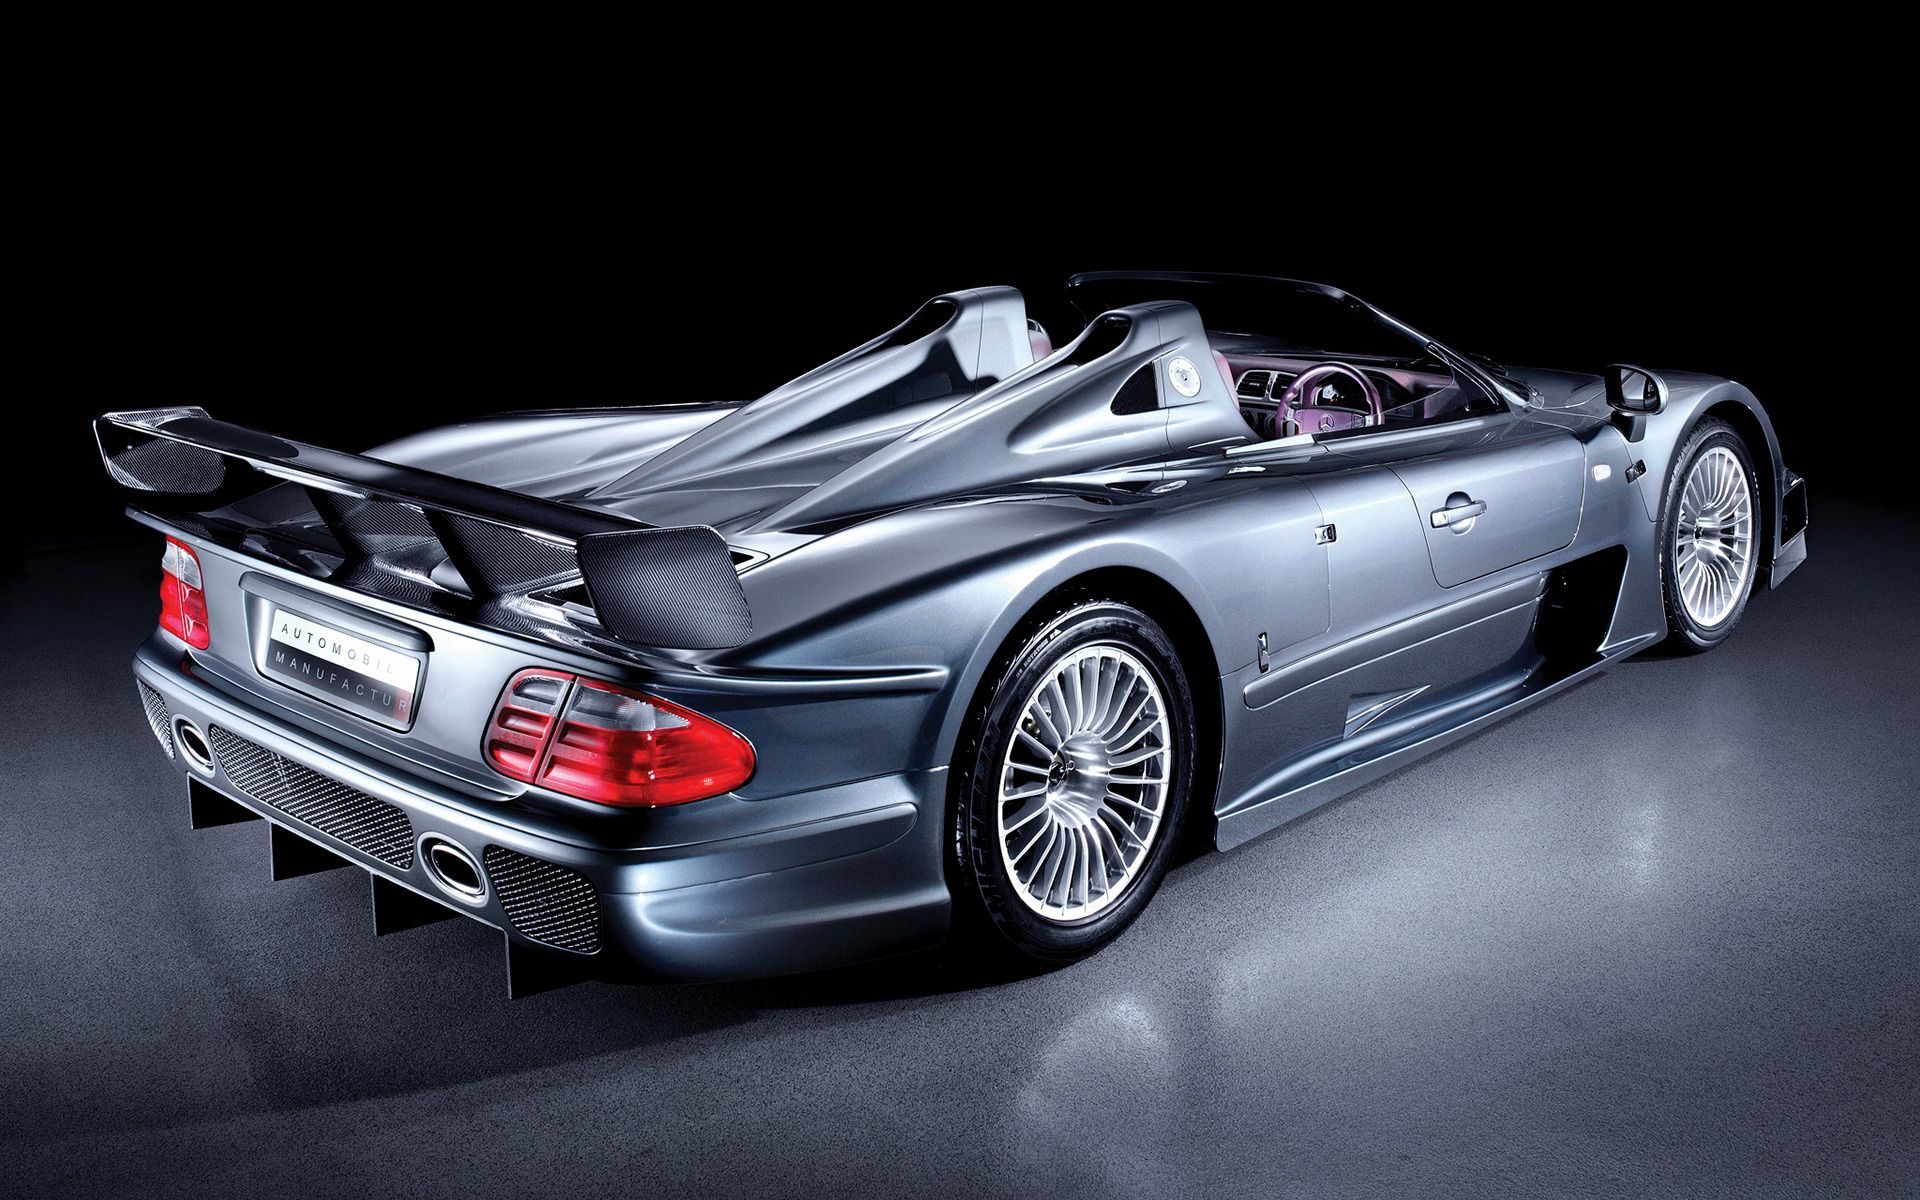 Mercedes-Benz CLK GTR Roadster [RHD] (2006) Wallpapers and ...